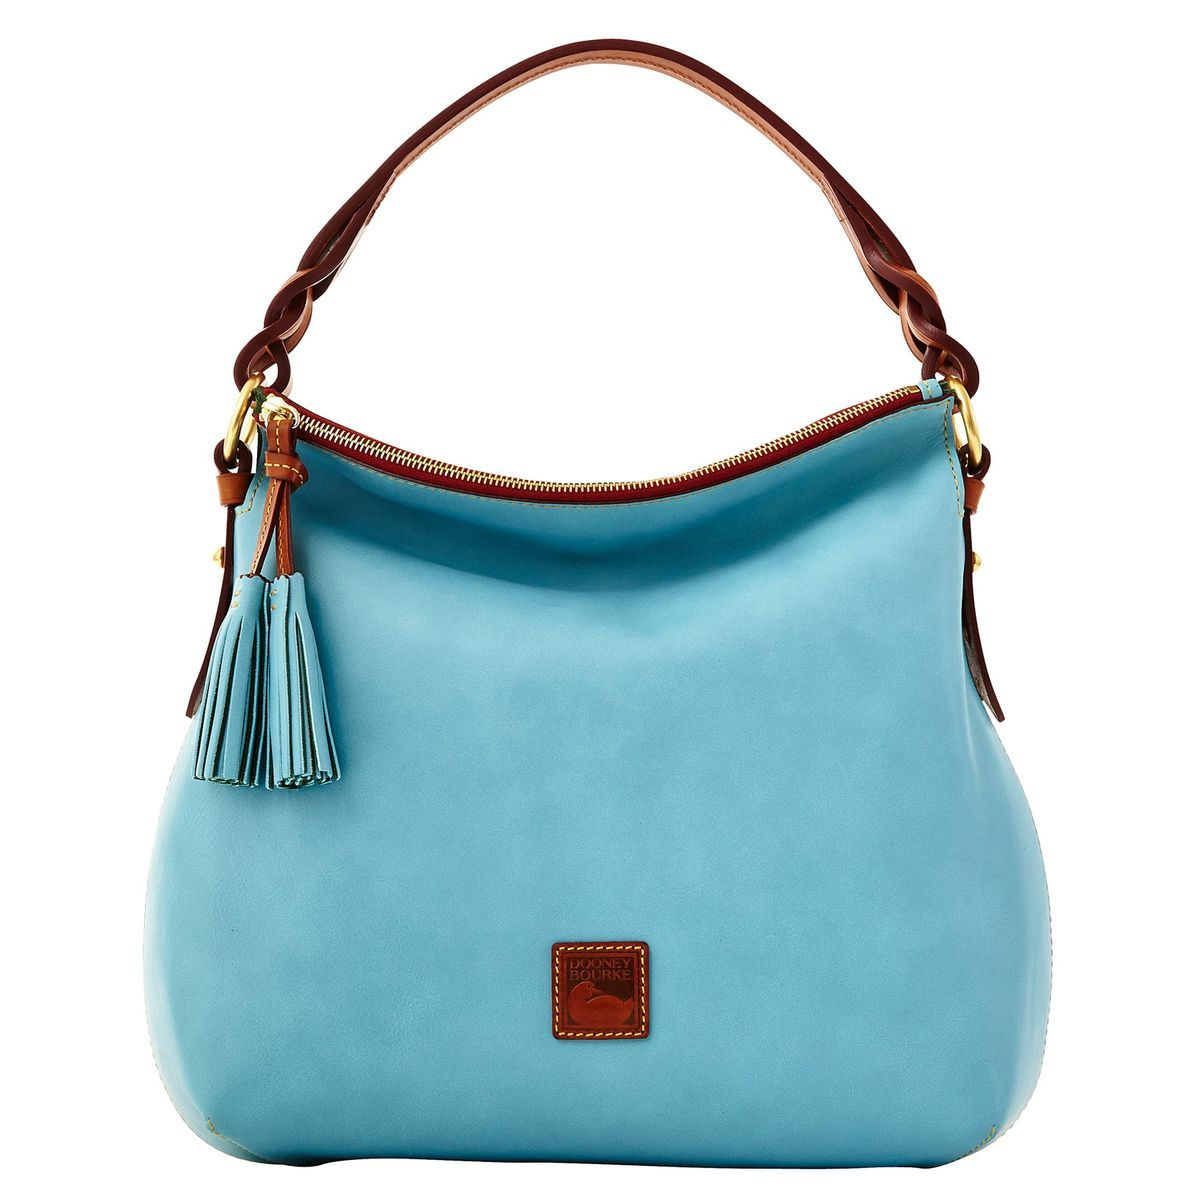 Dooney & Bourke Twist Strap Hobo Bag - Aqua